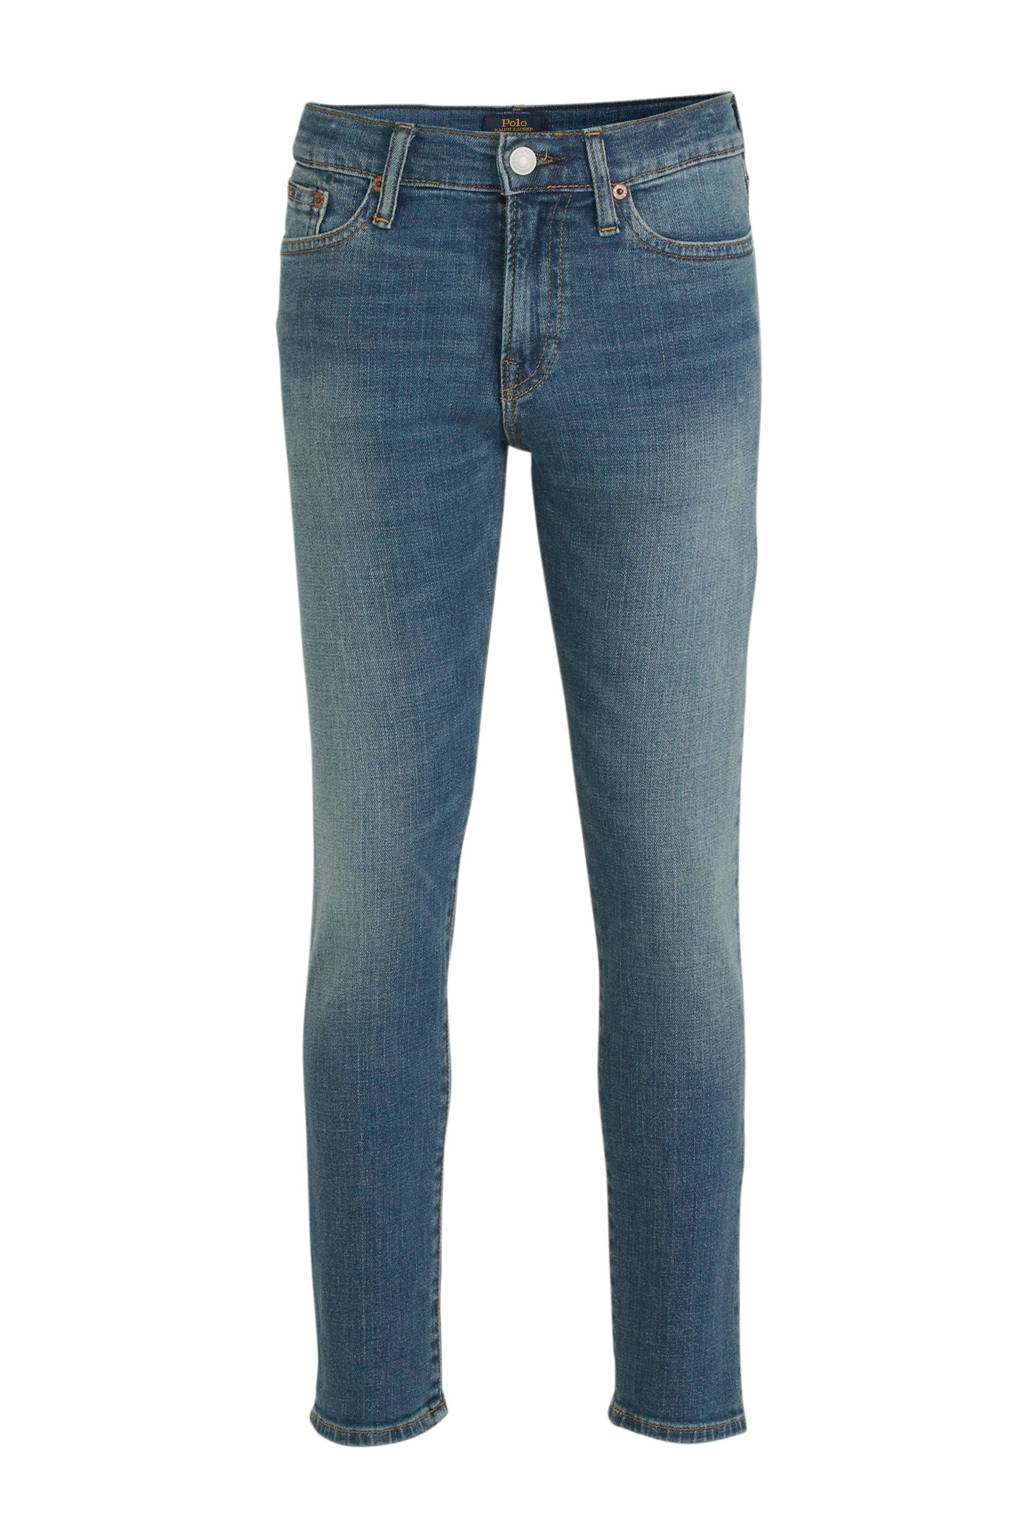 POLO Ralph Lauren jeans blauw, Light denim